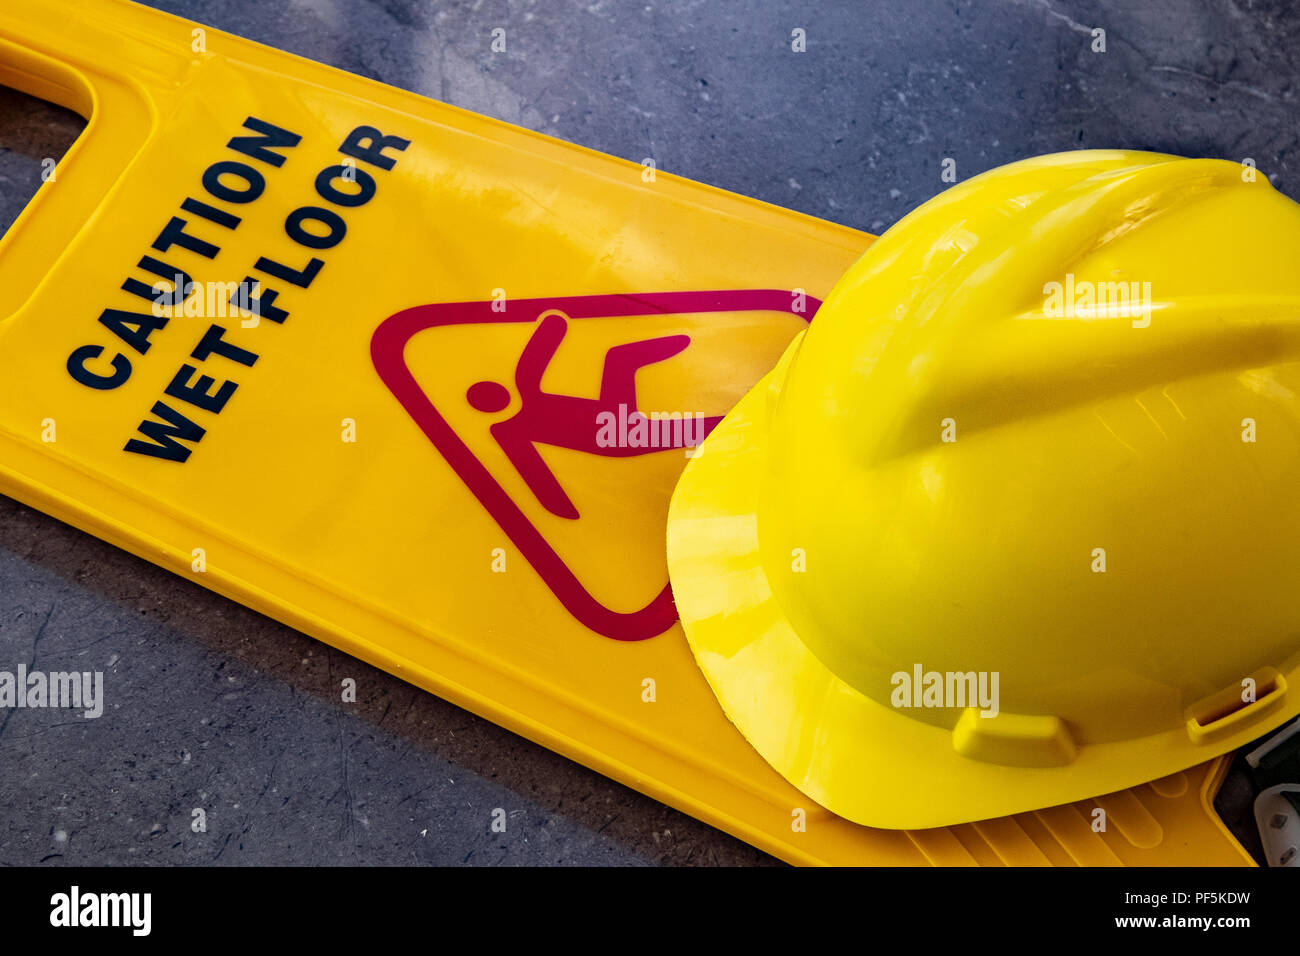 yellow plastic sign showing caution warning of wet floor with yellow protective helmet lying on floor - Stock Image